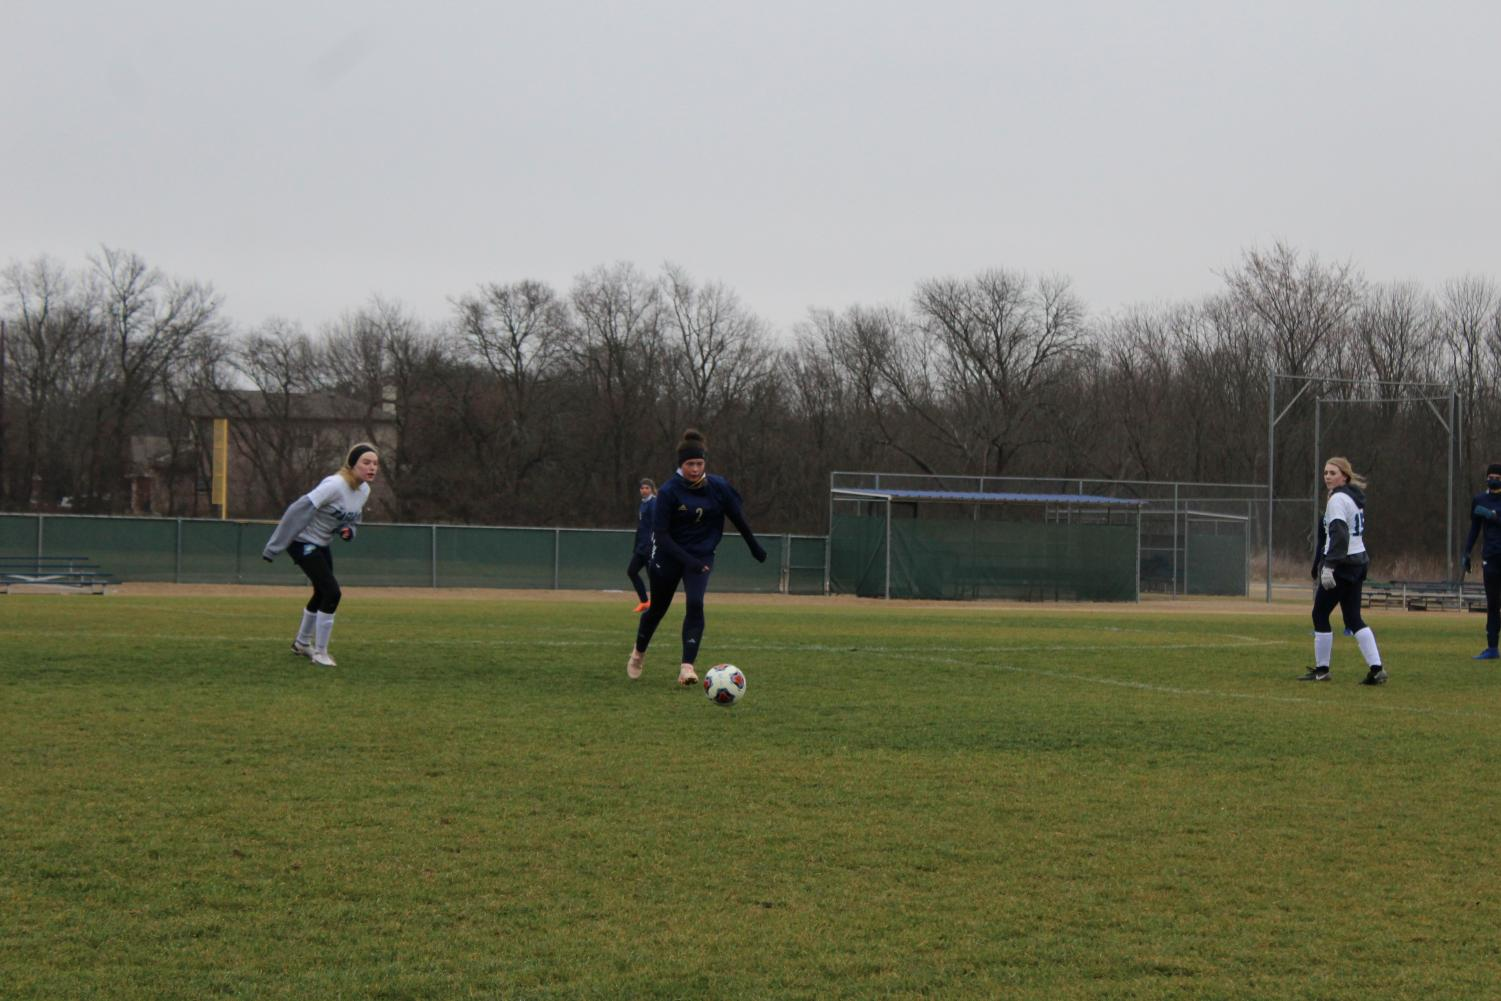 Lady+Mustangs+Soccer+Kicks+Off+Playoffs+with+a+Win